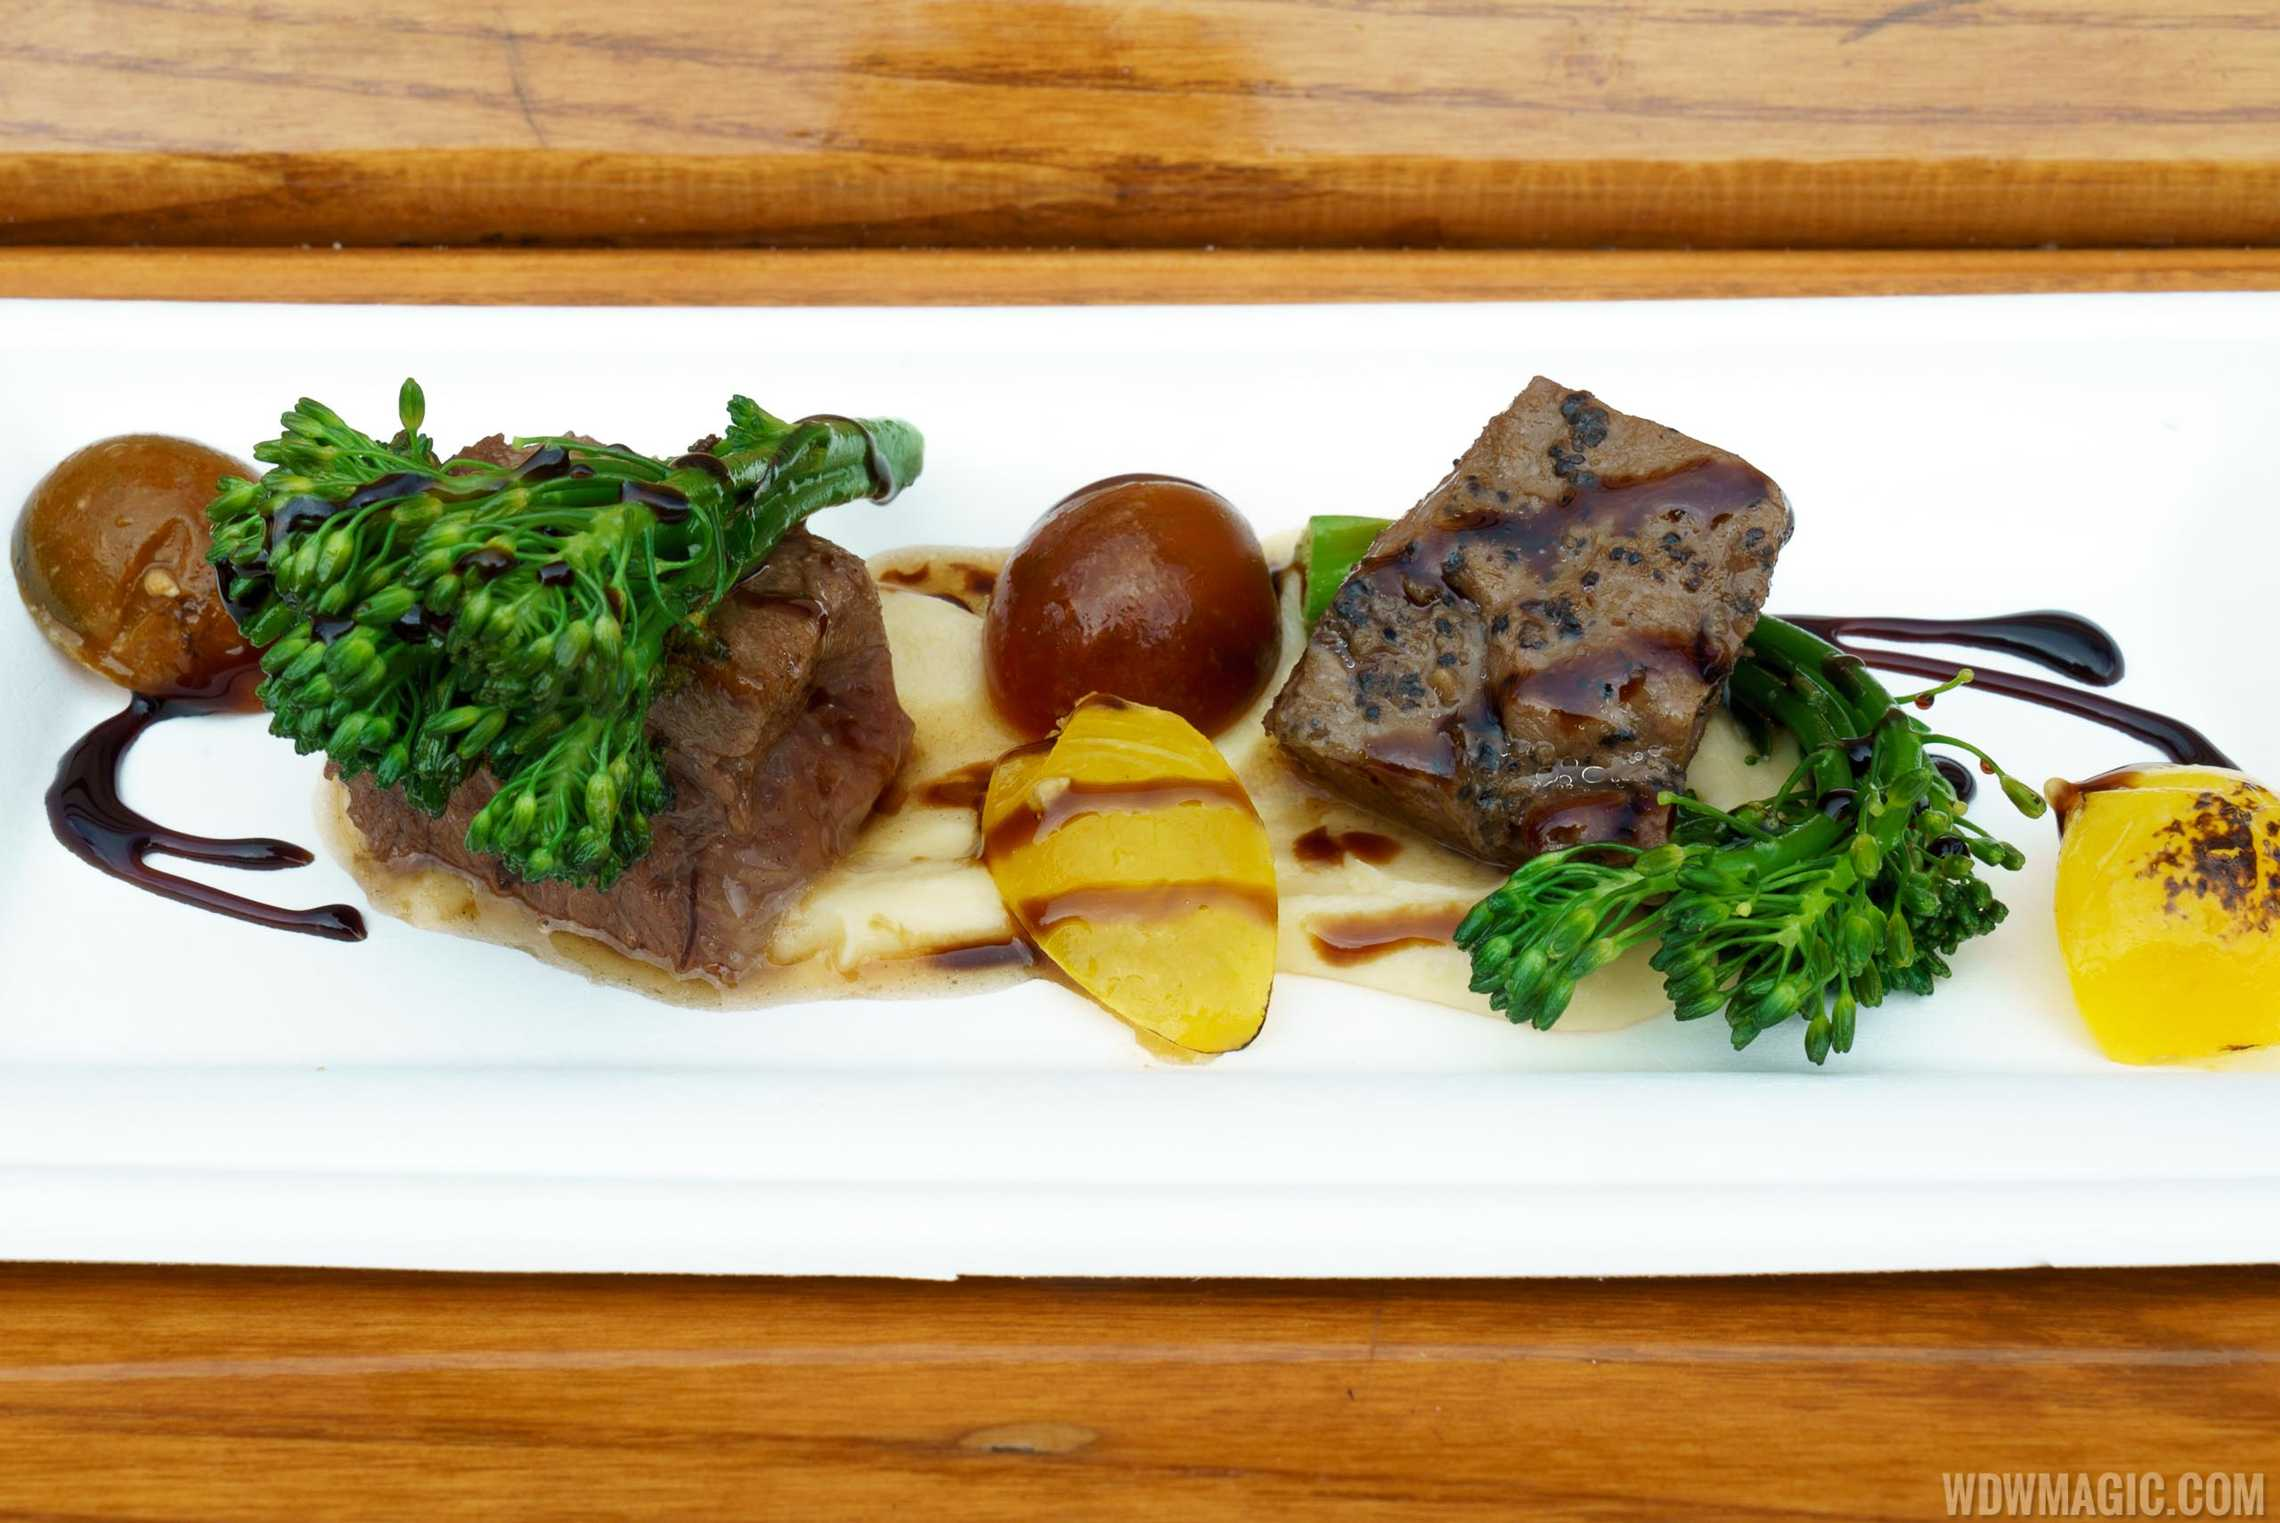 Festival of the Arts Food Studio - Cuisine Classique - Braised Short Rib with Parsnip Purée, Broccolini, Baby Tomatoes and Aged Balsamic